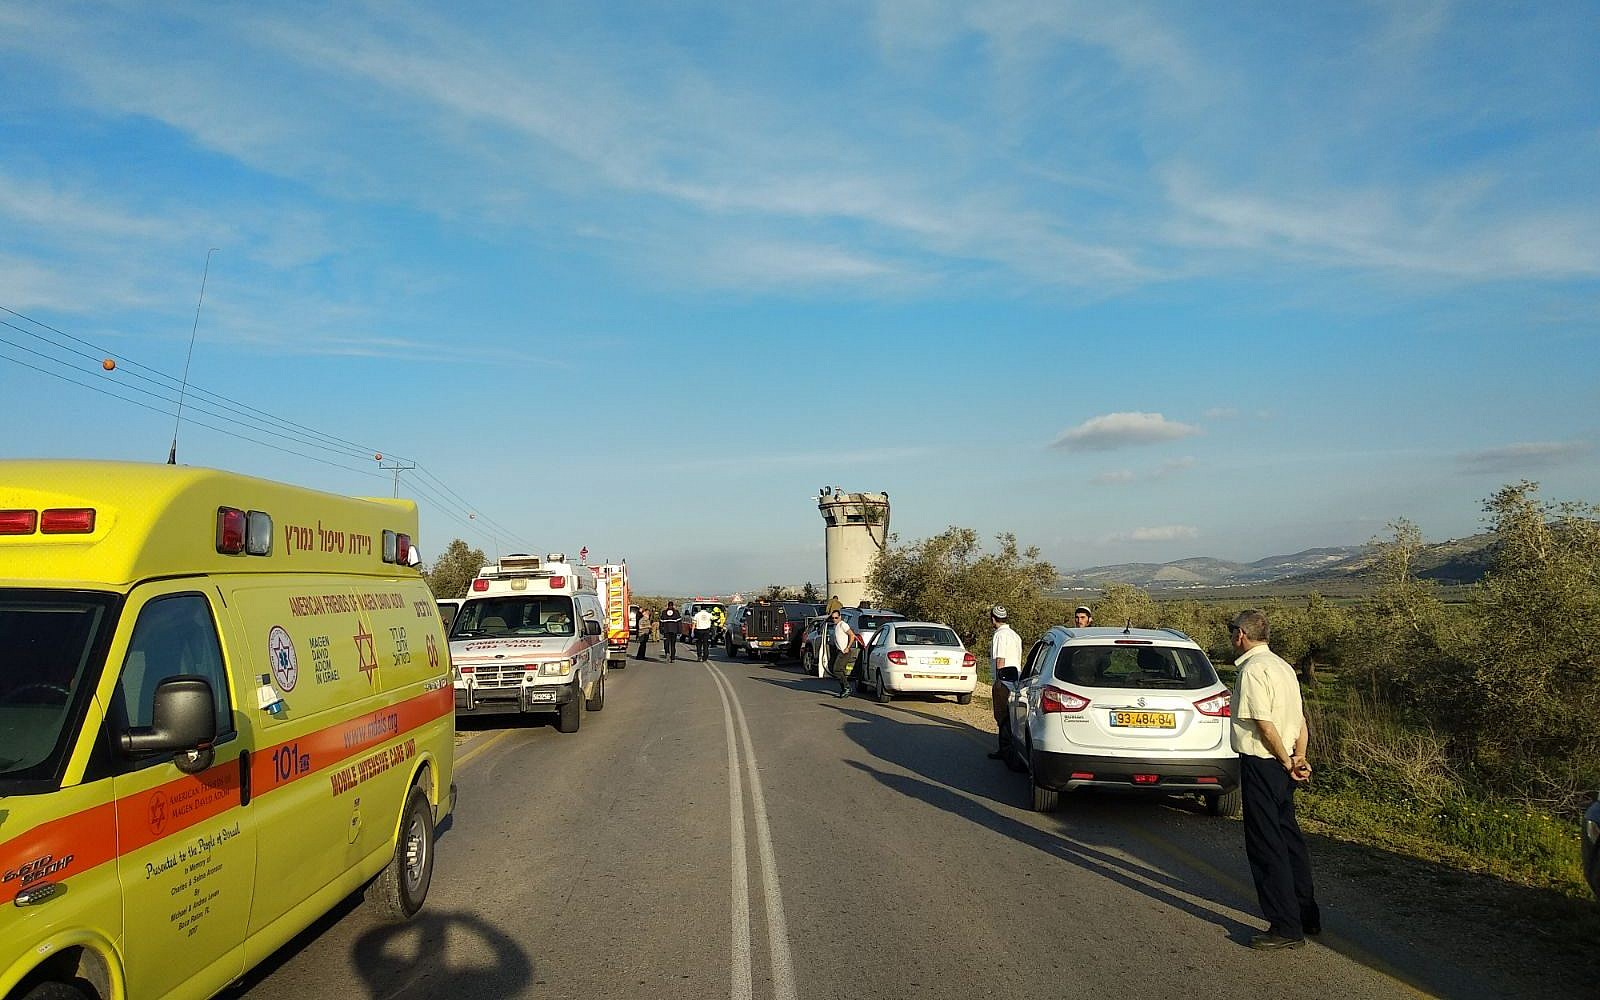 West Bank on lockdown after 'car ramming kills two'